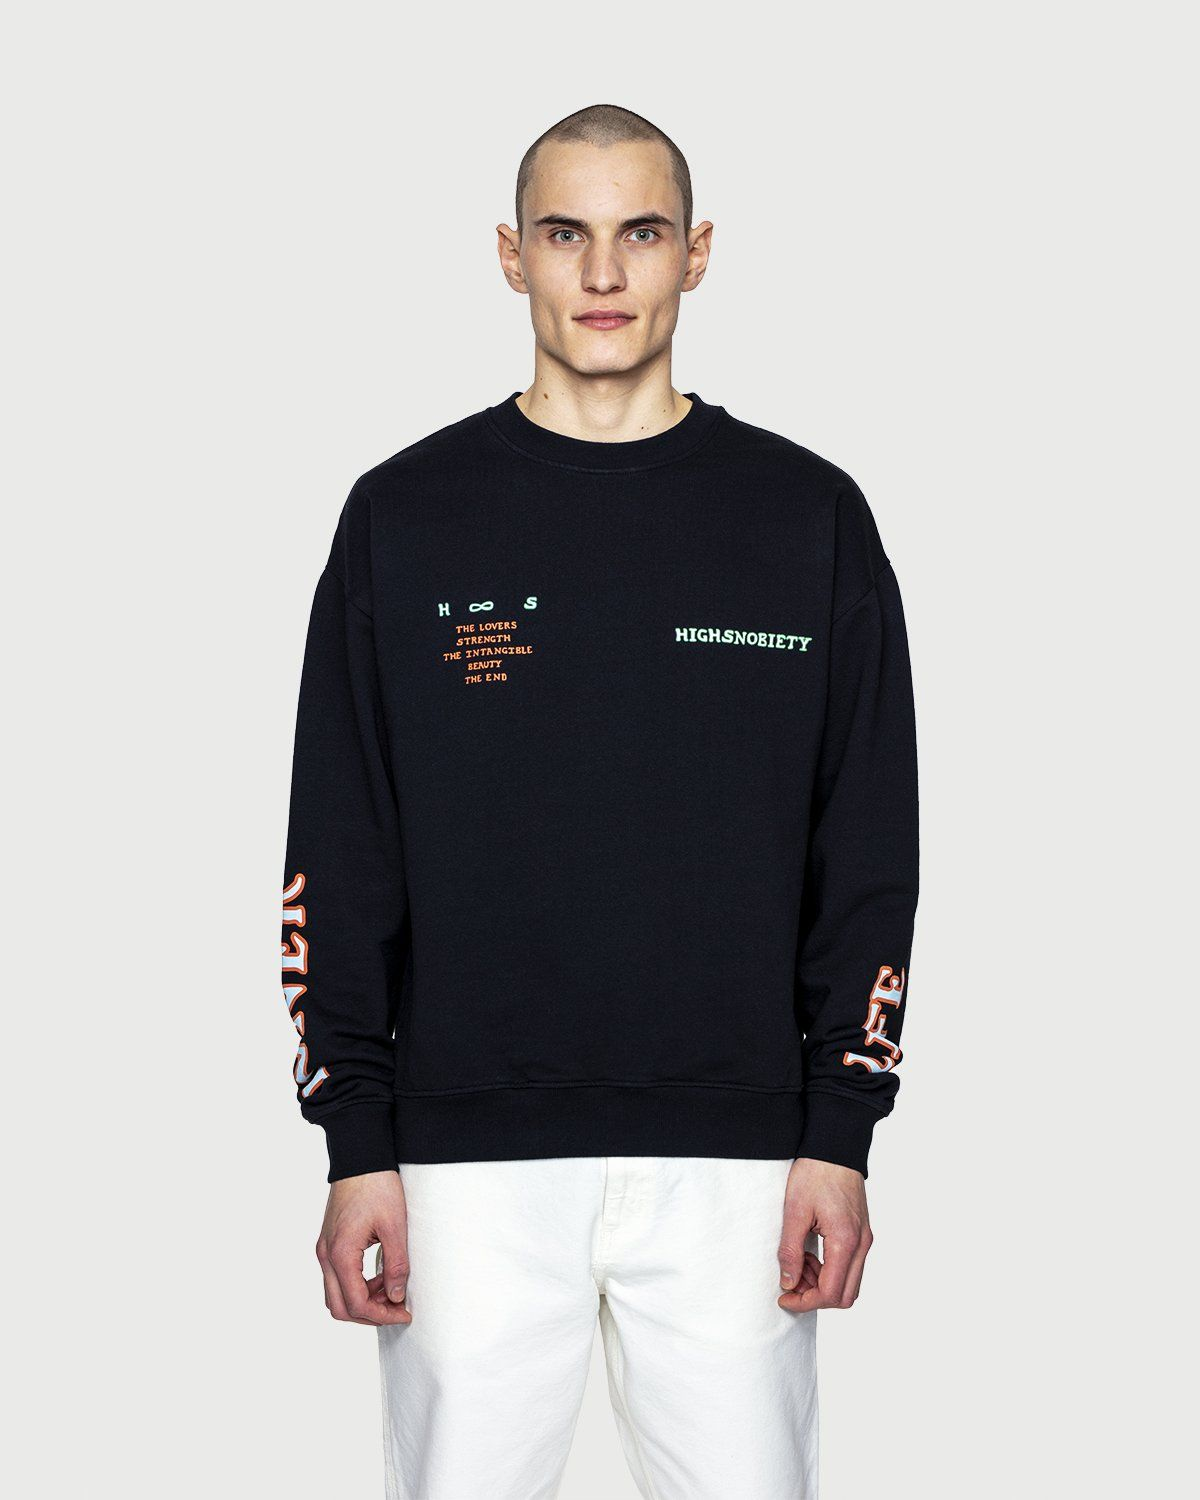 Inner Life by Highsnobiety - The Intangible Sweatshirt Black - Image 2